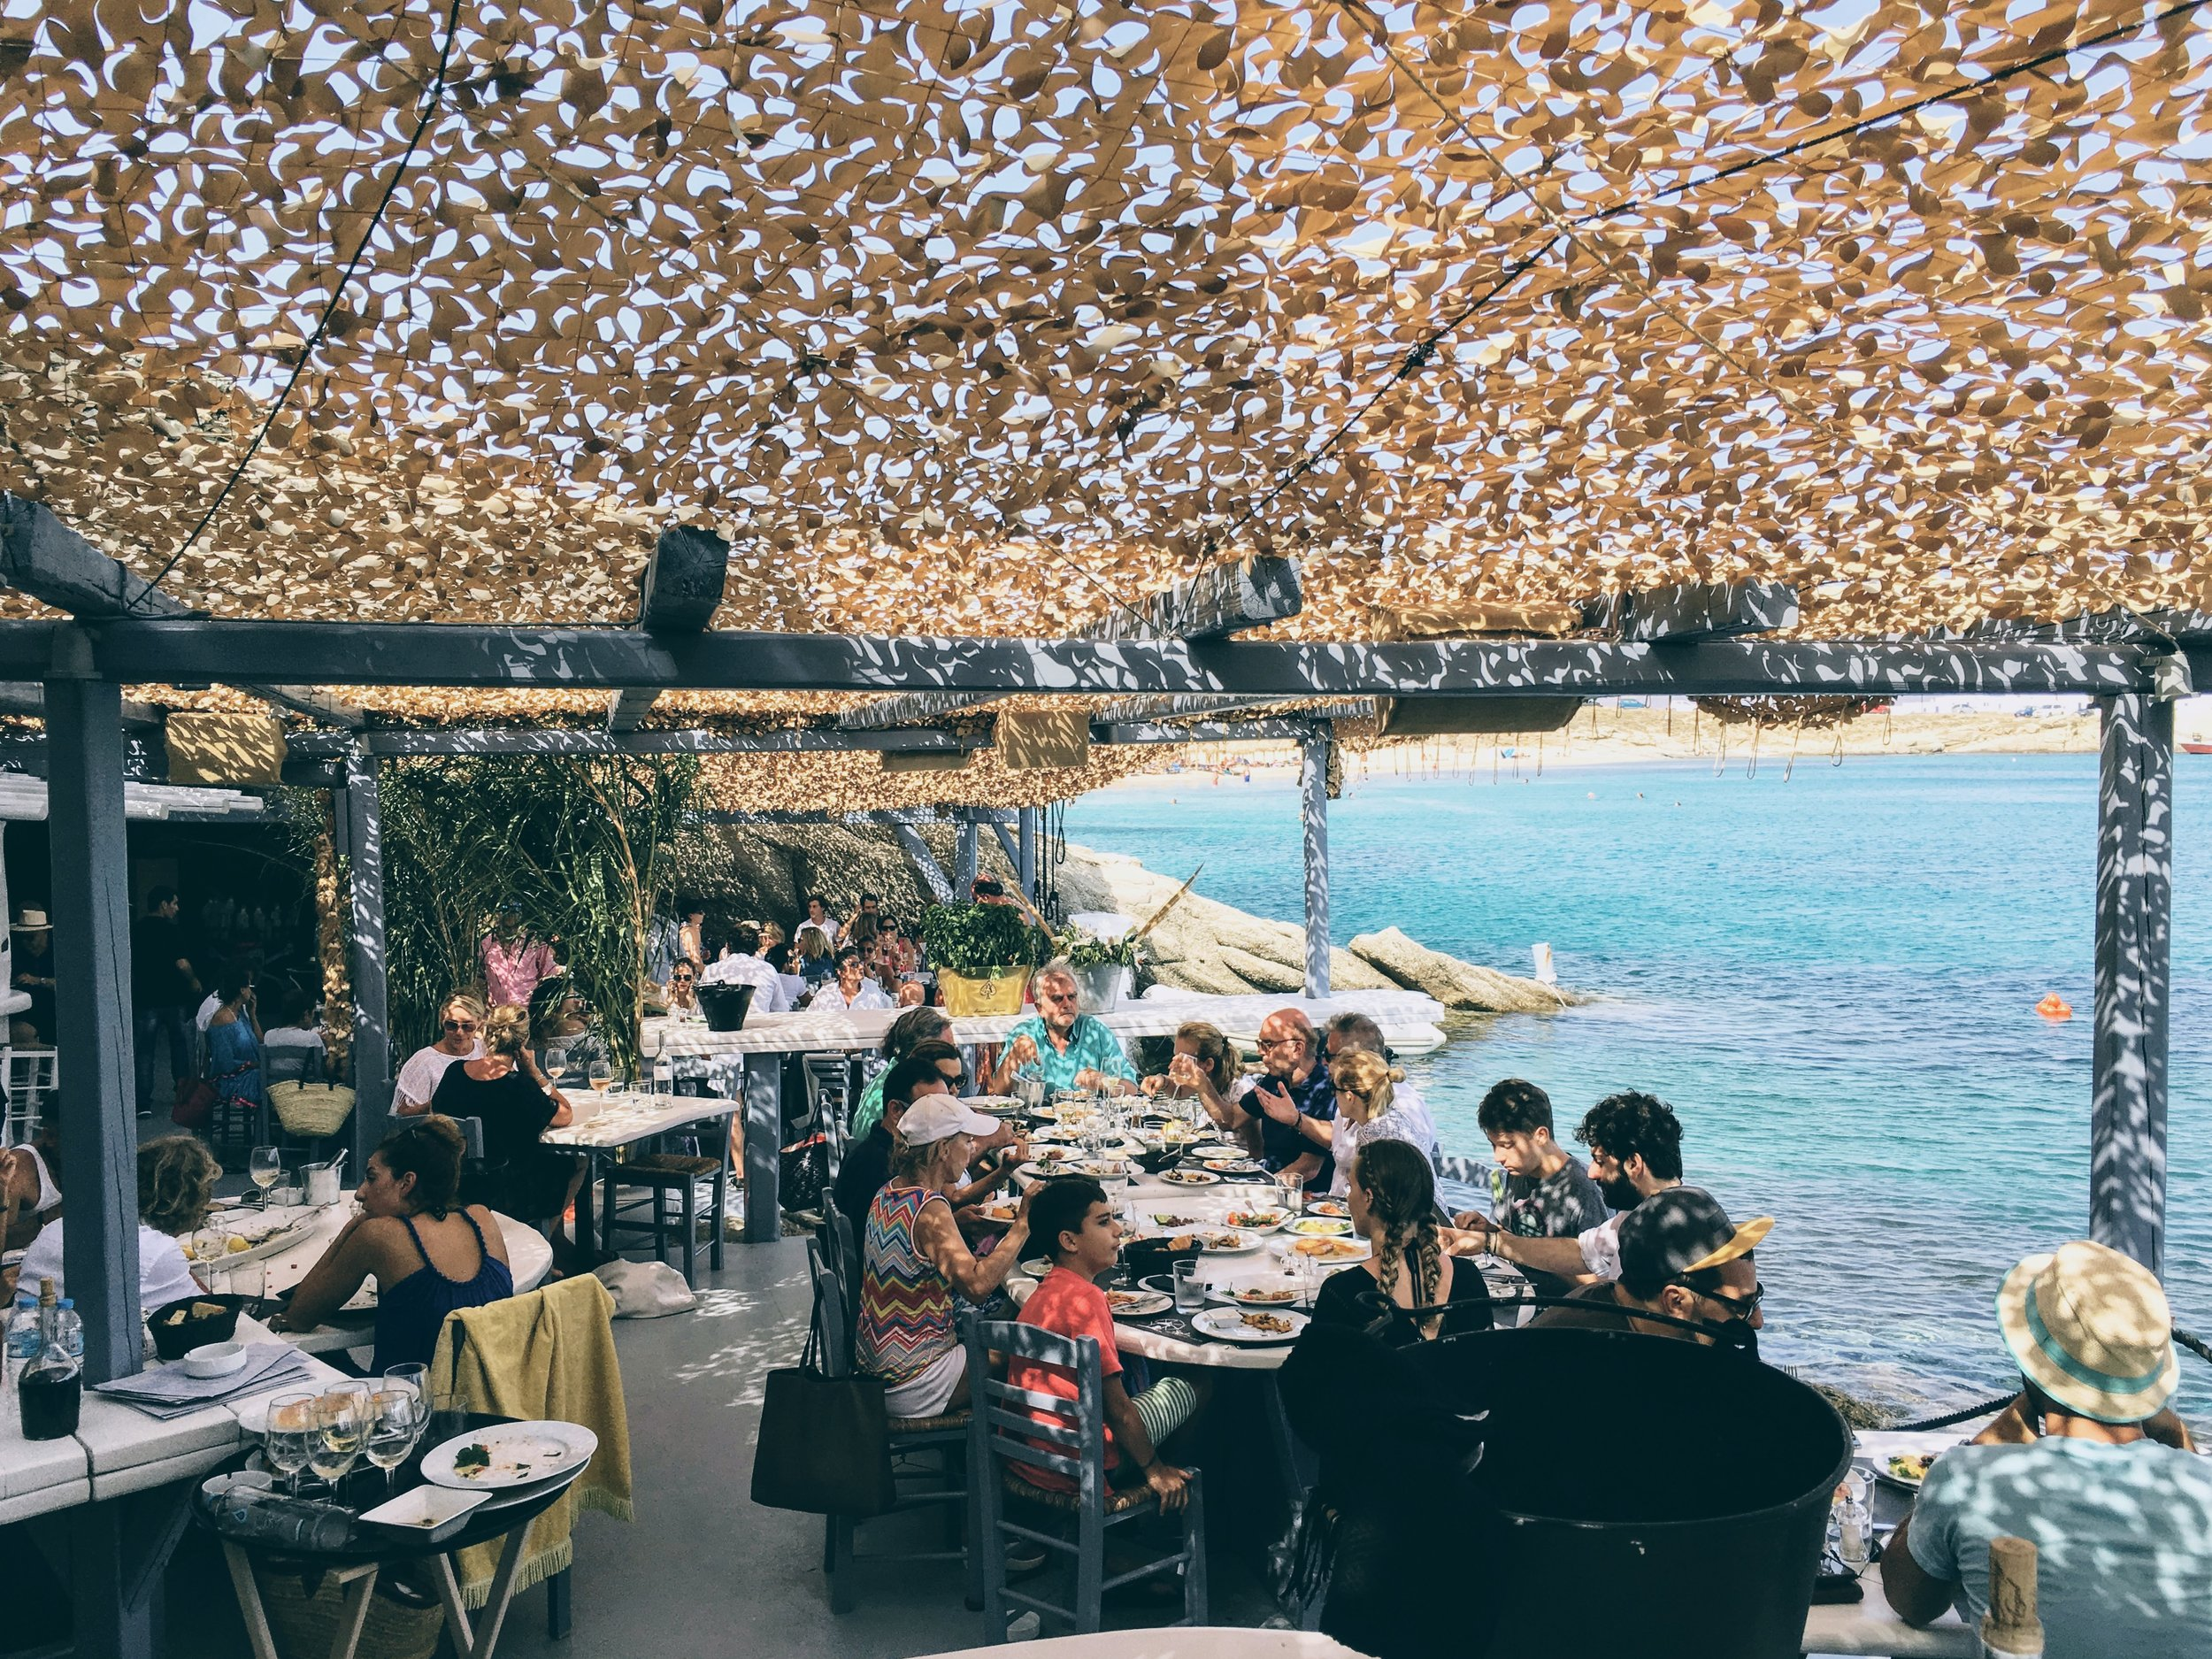 Travel Food People - Spilia seaside, Mykonos